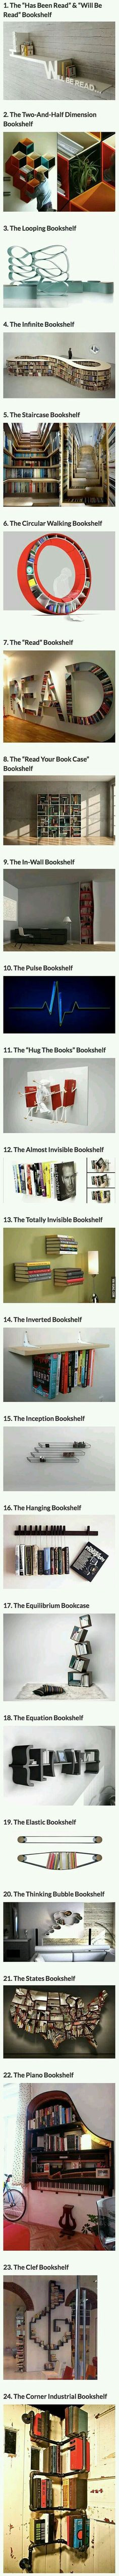 We have rounded up some cool and creative bookshelves that geeks would love. << I love the infinity and staircase bookshelves! I would want the staircase and invisible shelves. Creative Bookshelves, Decorating Bookshelves, Floating Bookshelves, Ideias Diy, Book Nooks, Reading Nooks, My New Room, My Dream Home, Book Lovers